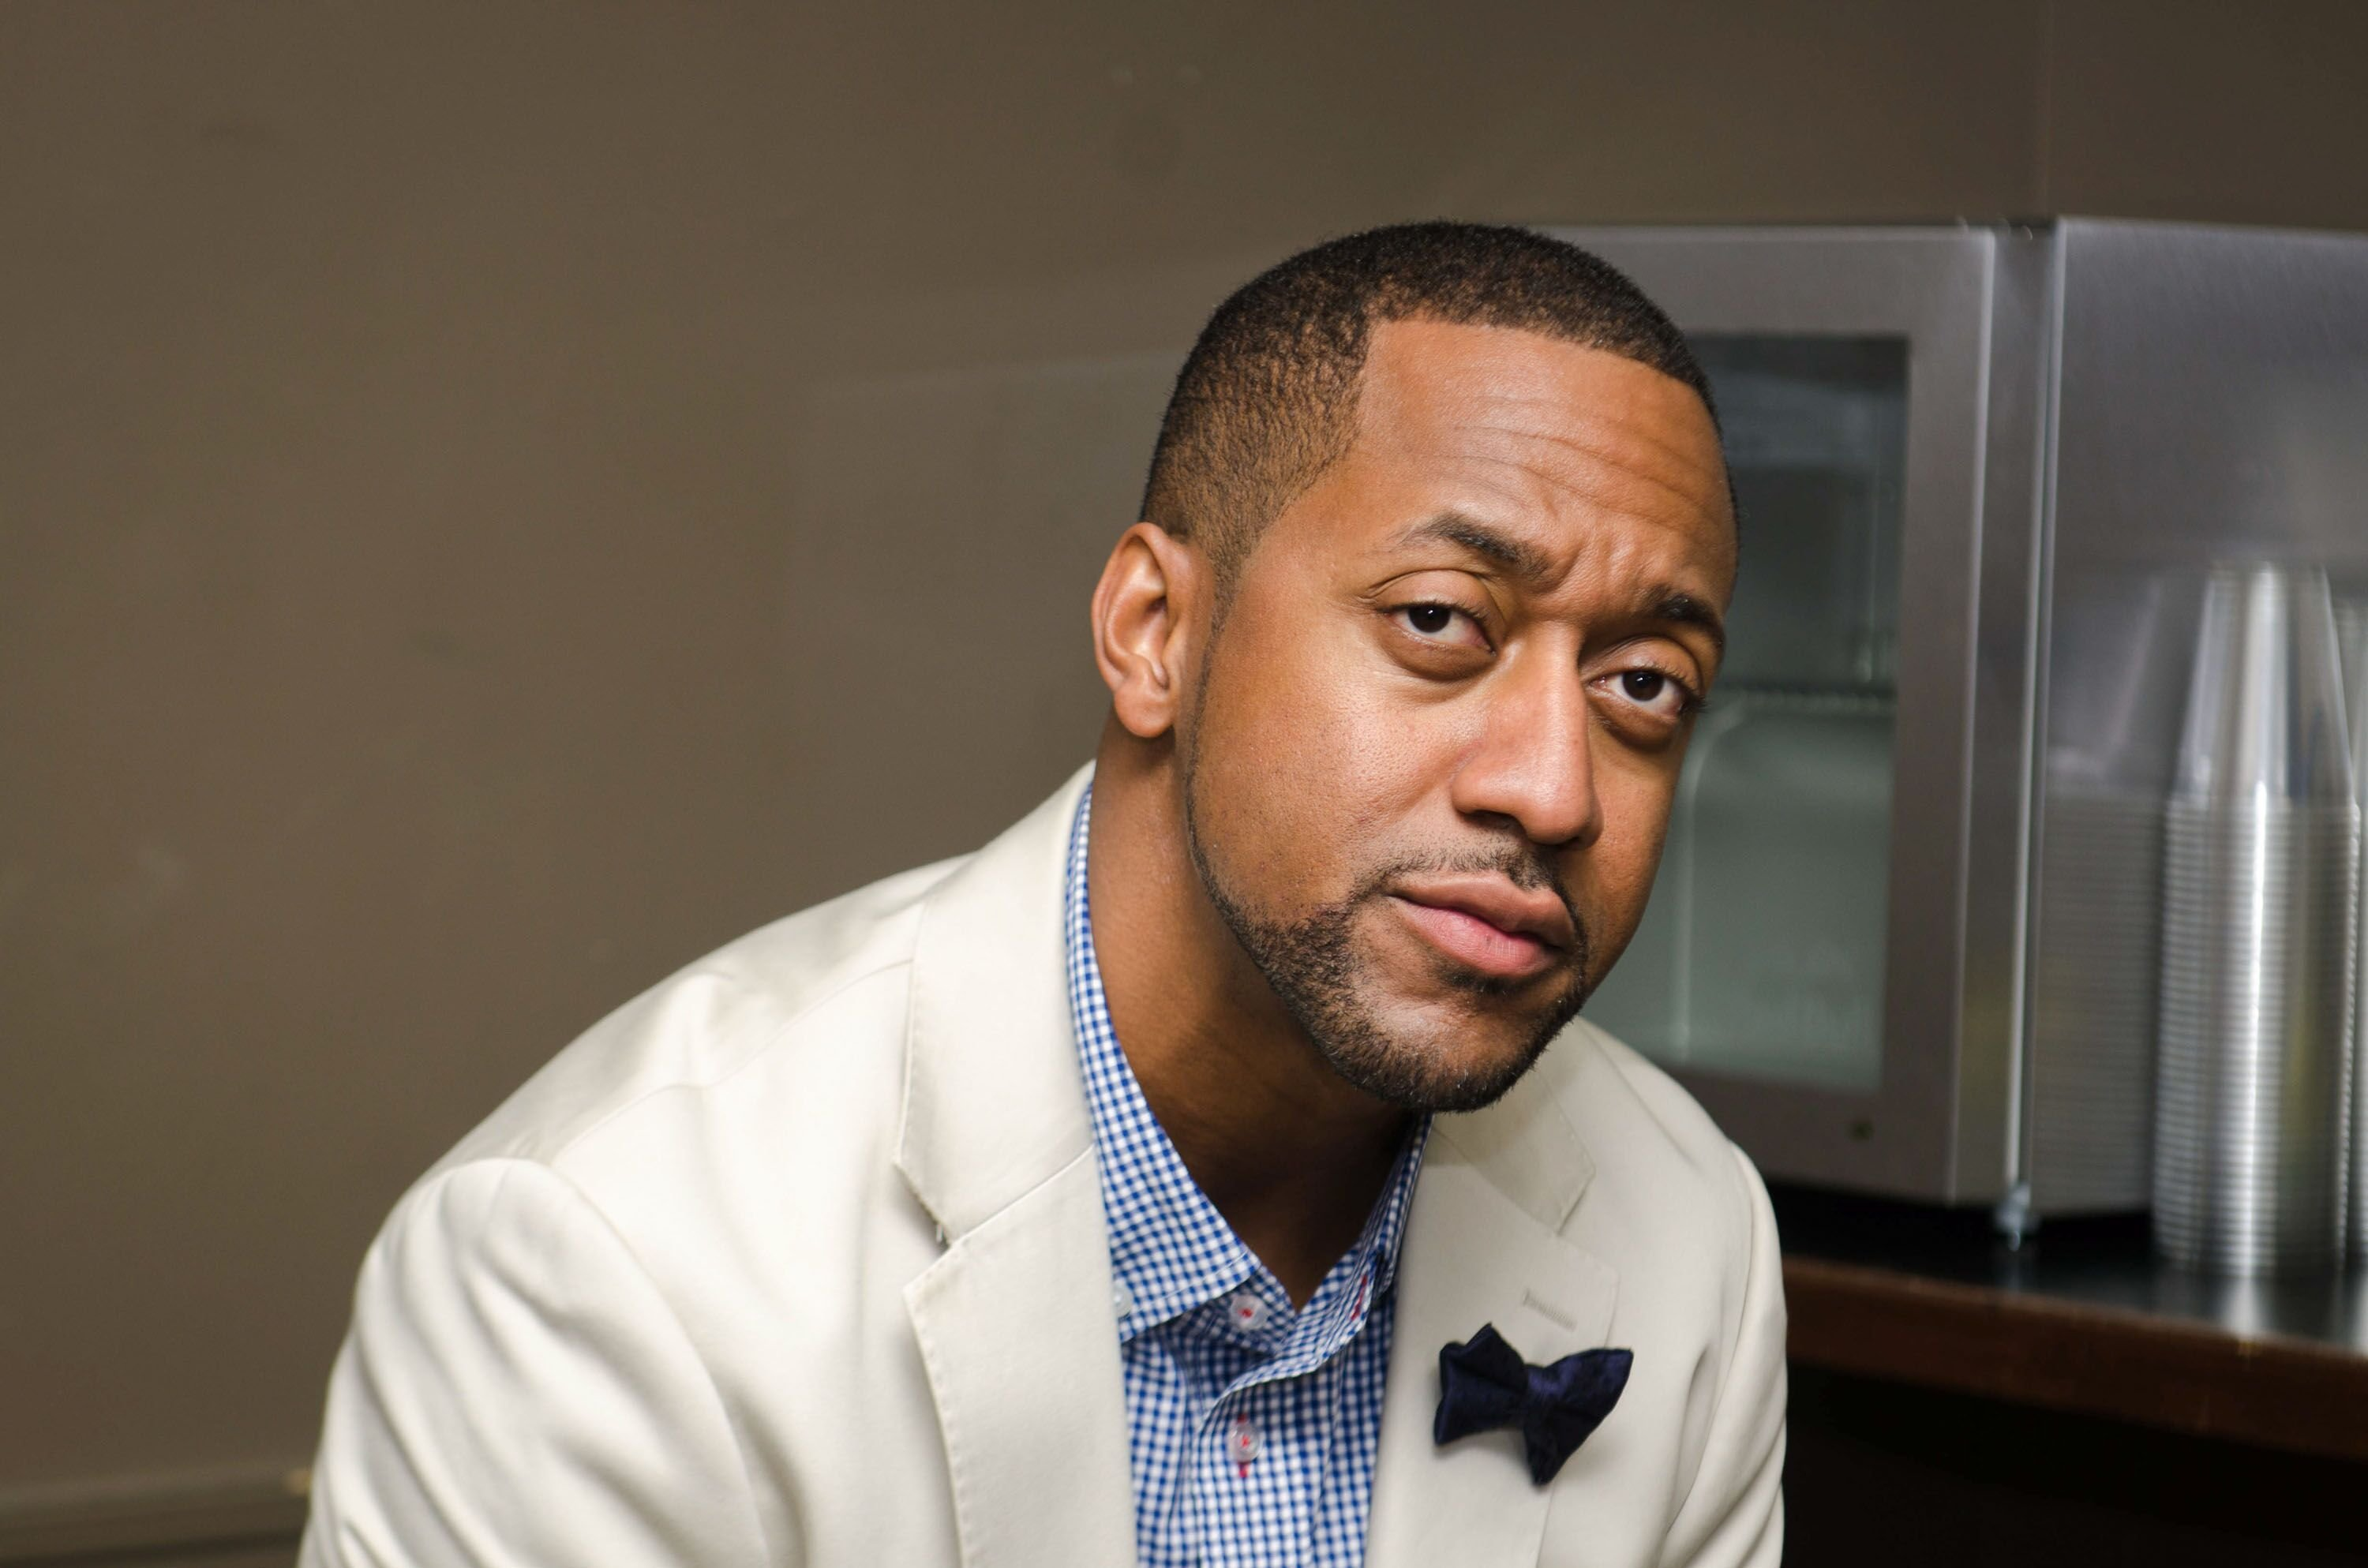 Jaleel White at the 6th Annual Agency Quiz Bowl in 2014 in New York City | Source: Getty Images